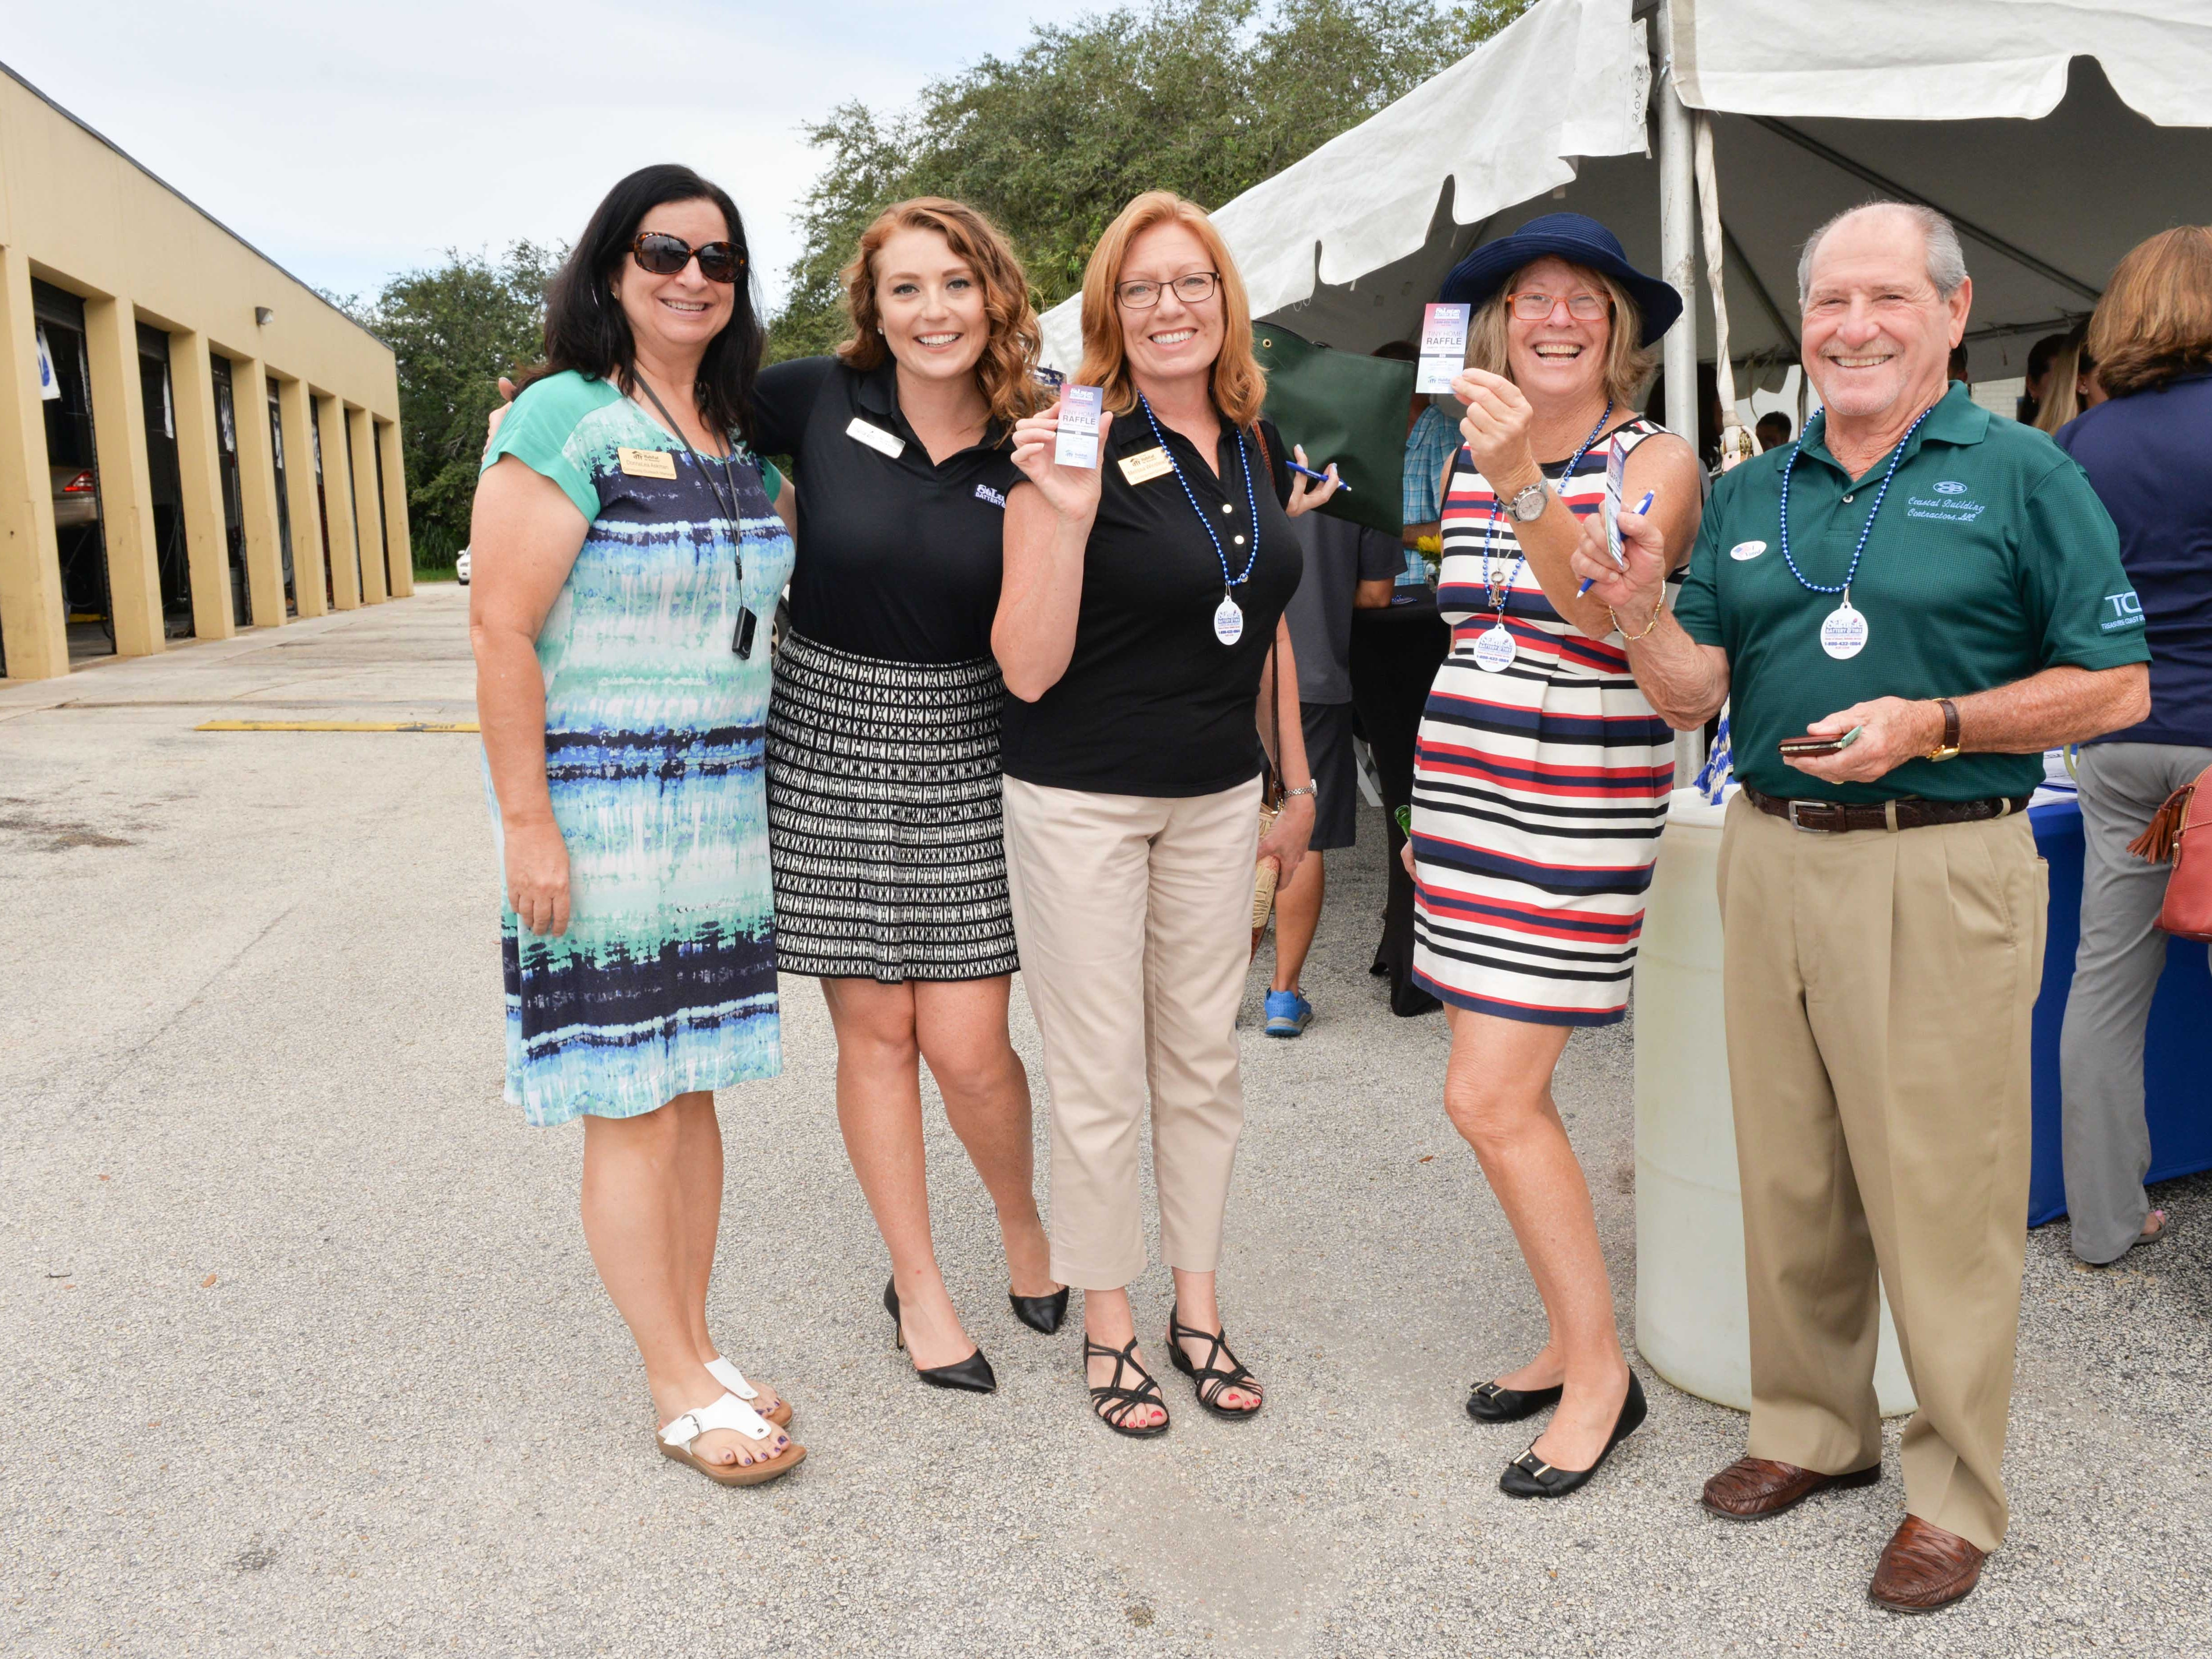 DonnaLea Askman, left, Lindsey Concannon, Melissa Winstead, Patti Hancock and Jeff Braun with their $20 raffle tickets for the 188-square-foot Diamond Lil' Tiny Home.